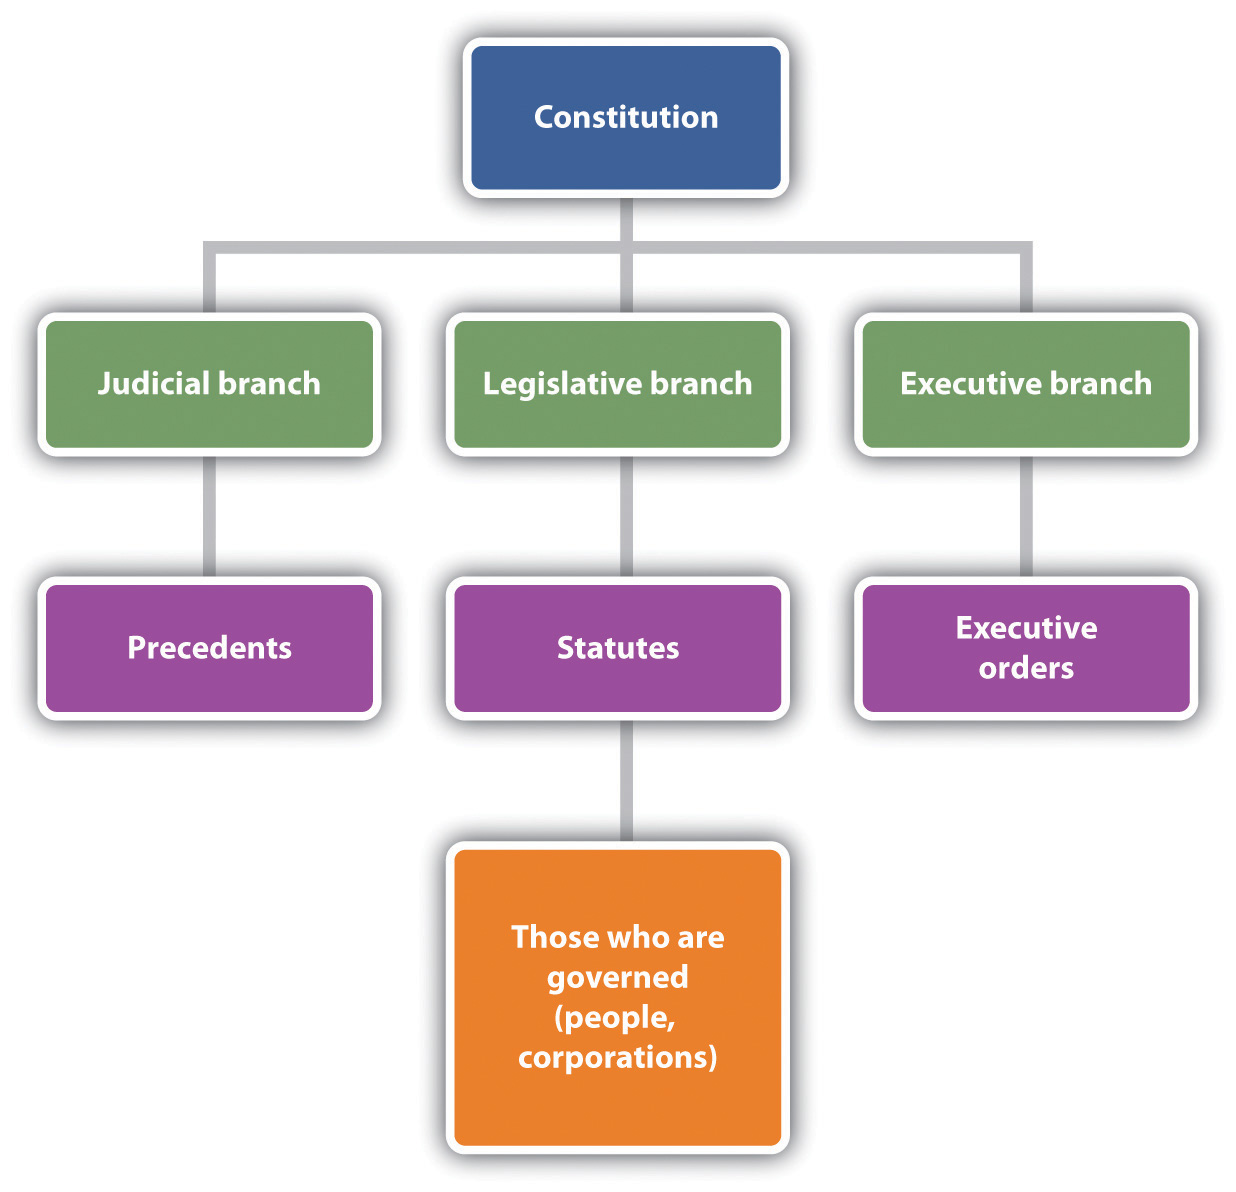 an analysis of a constitution the legal structure of a political system Information about turkey's constitution, legislative and judiciary system, as well as its executive bodies english english türkçe deutsch français español legal and political structure constitution.